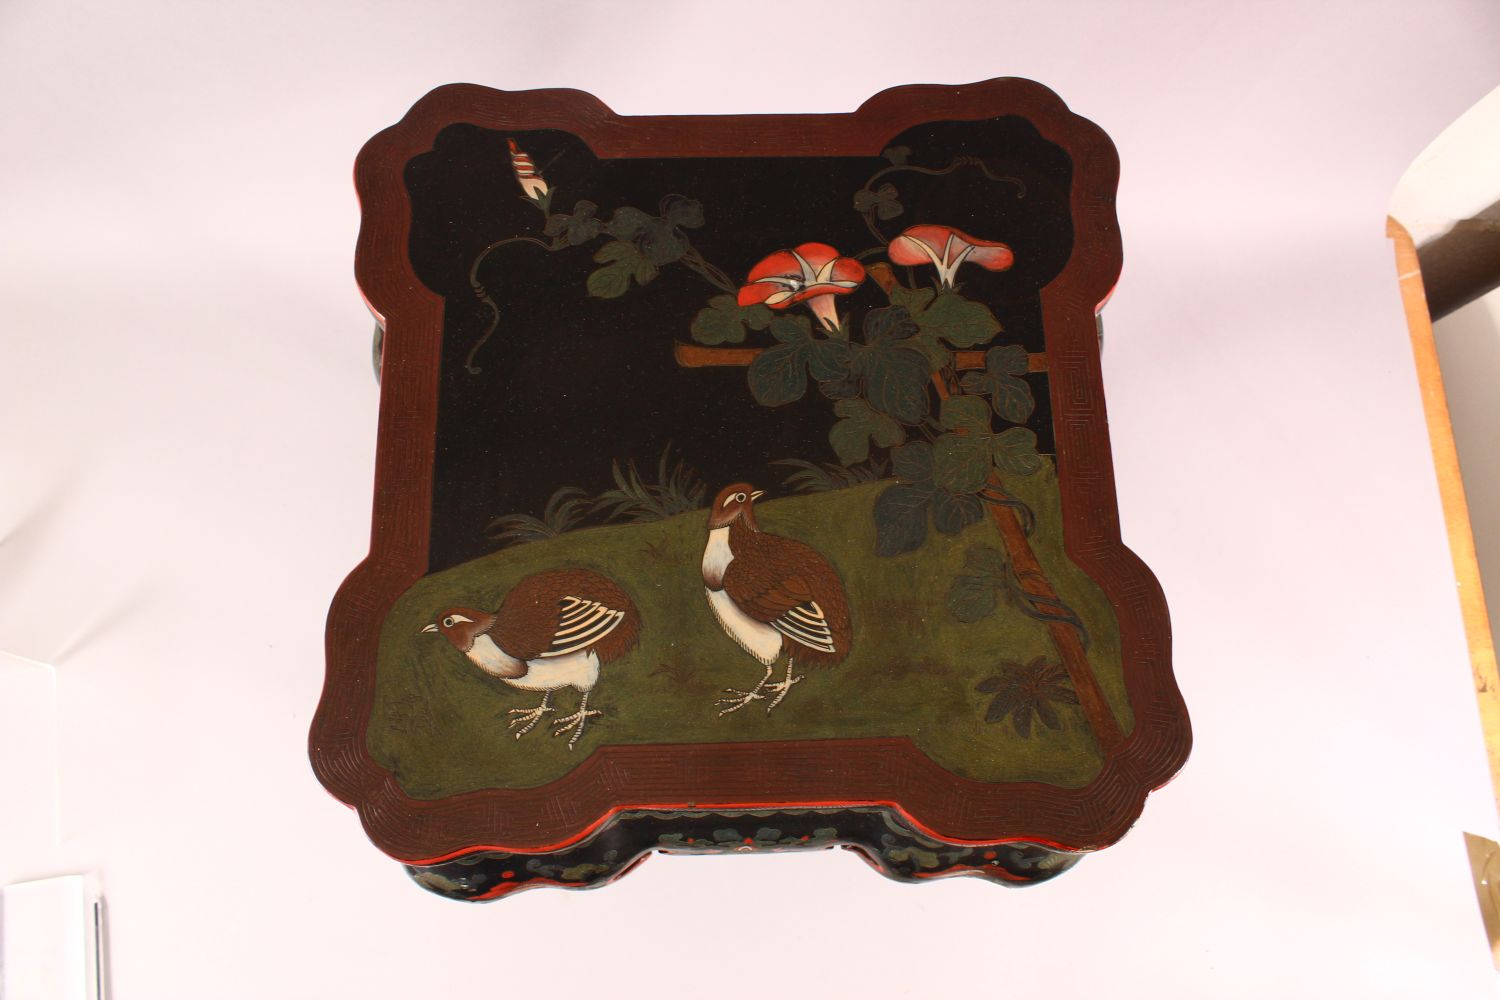 A GOOD CHINESE CARVED WOOD & LACQUER DECORATED LOW TABLE, the top with decoration of quails in - Image 3 of 6